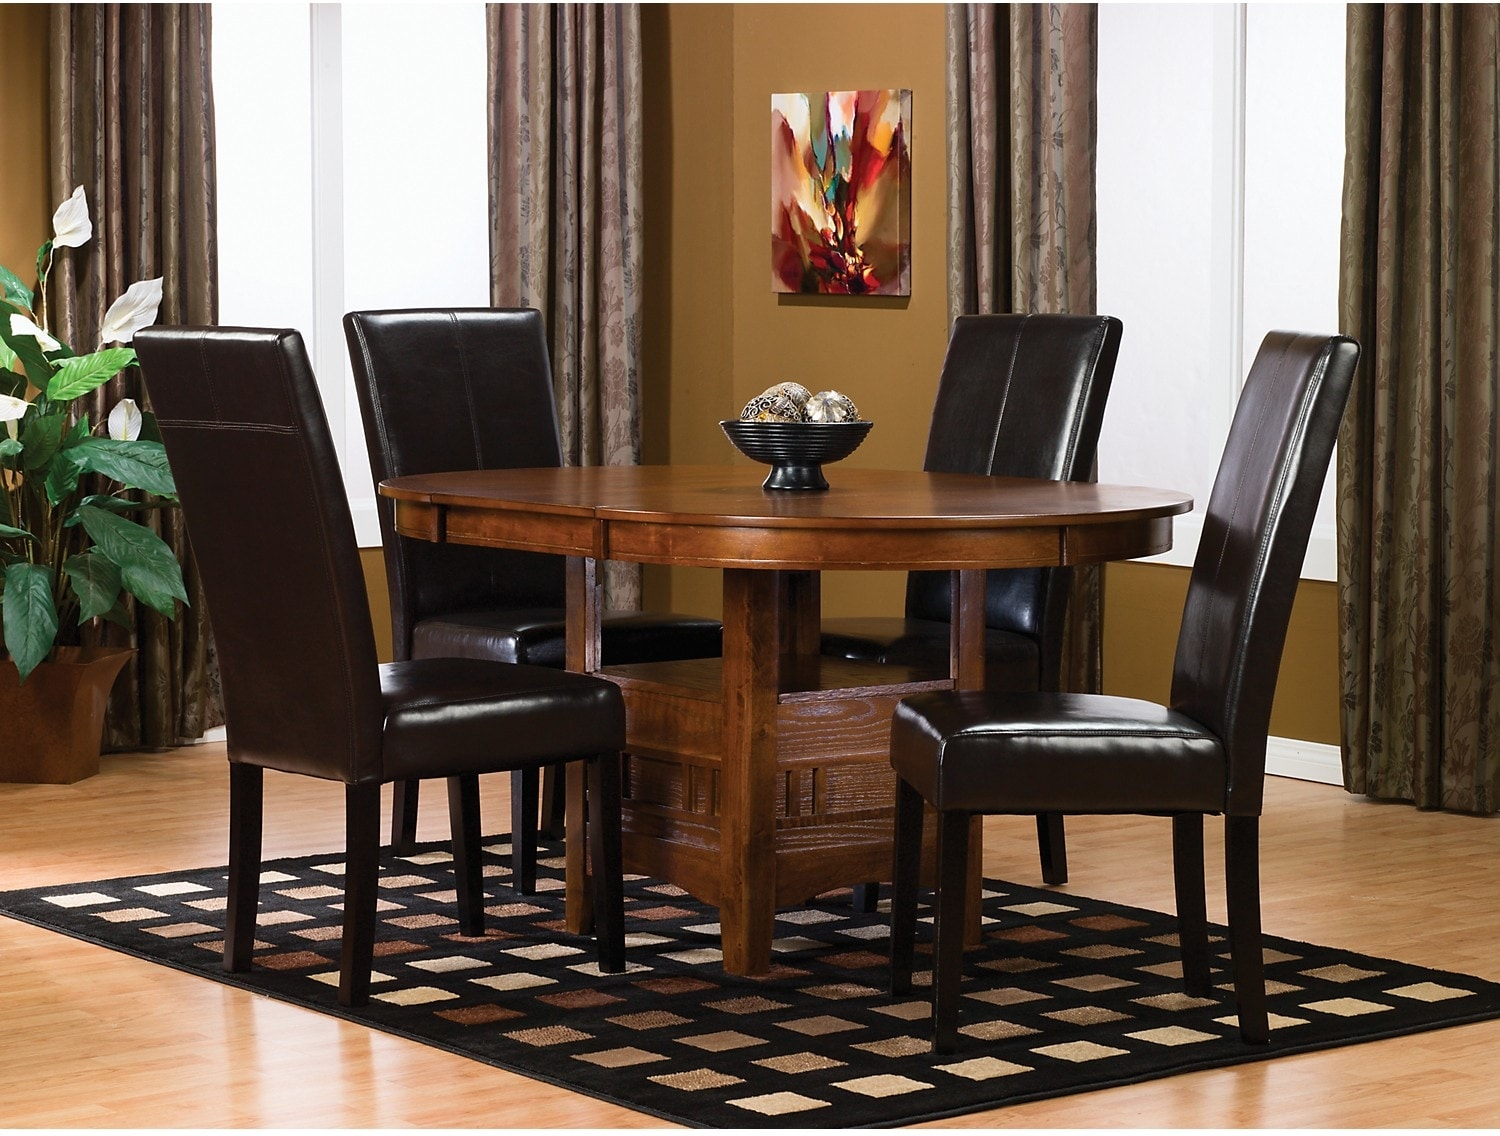 Dalton 5-Piece Oak Dining Package with Brown Chairs